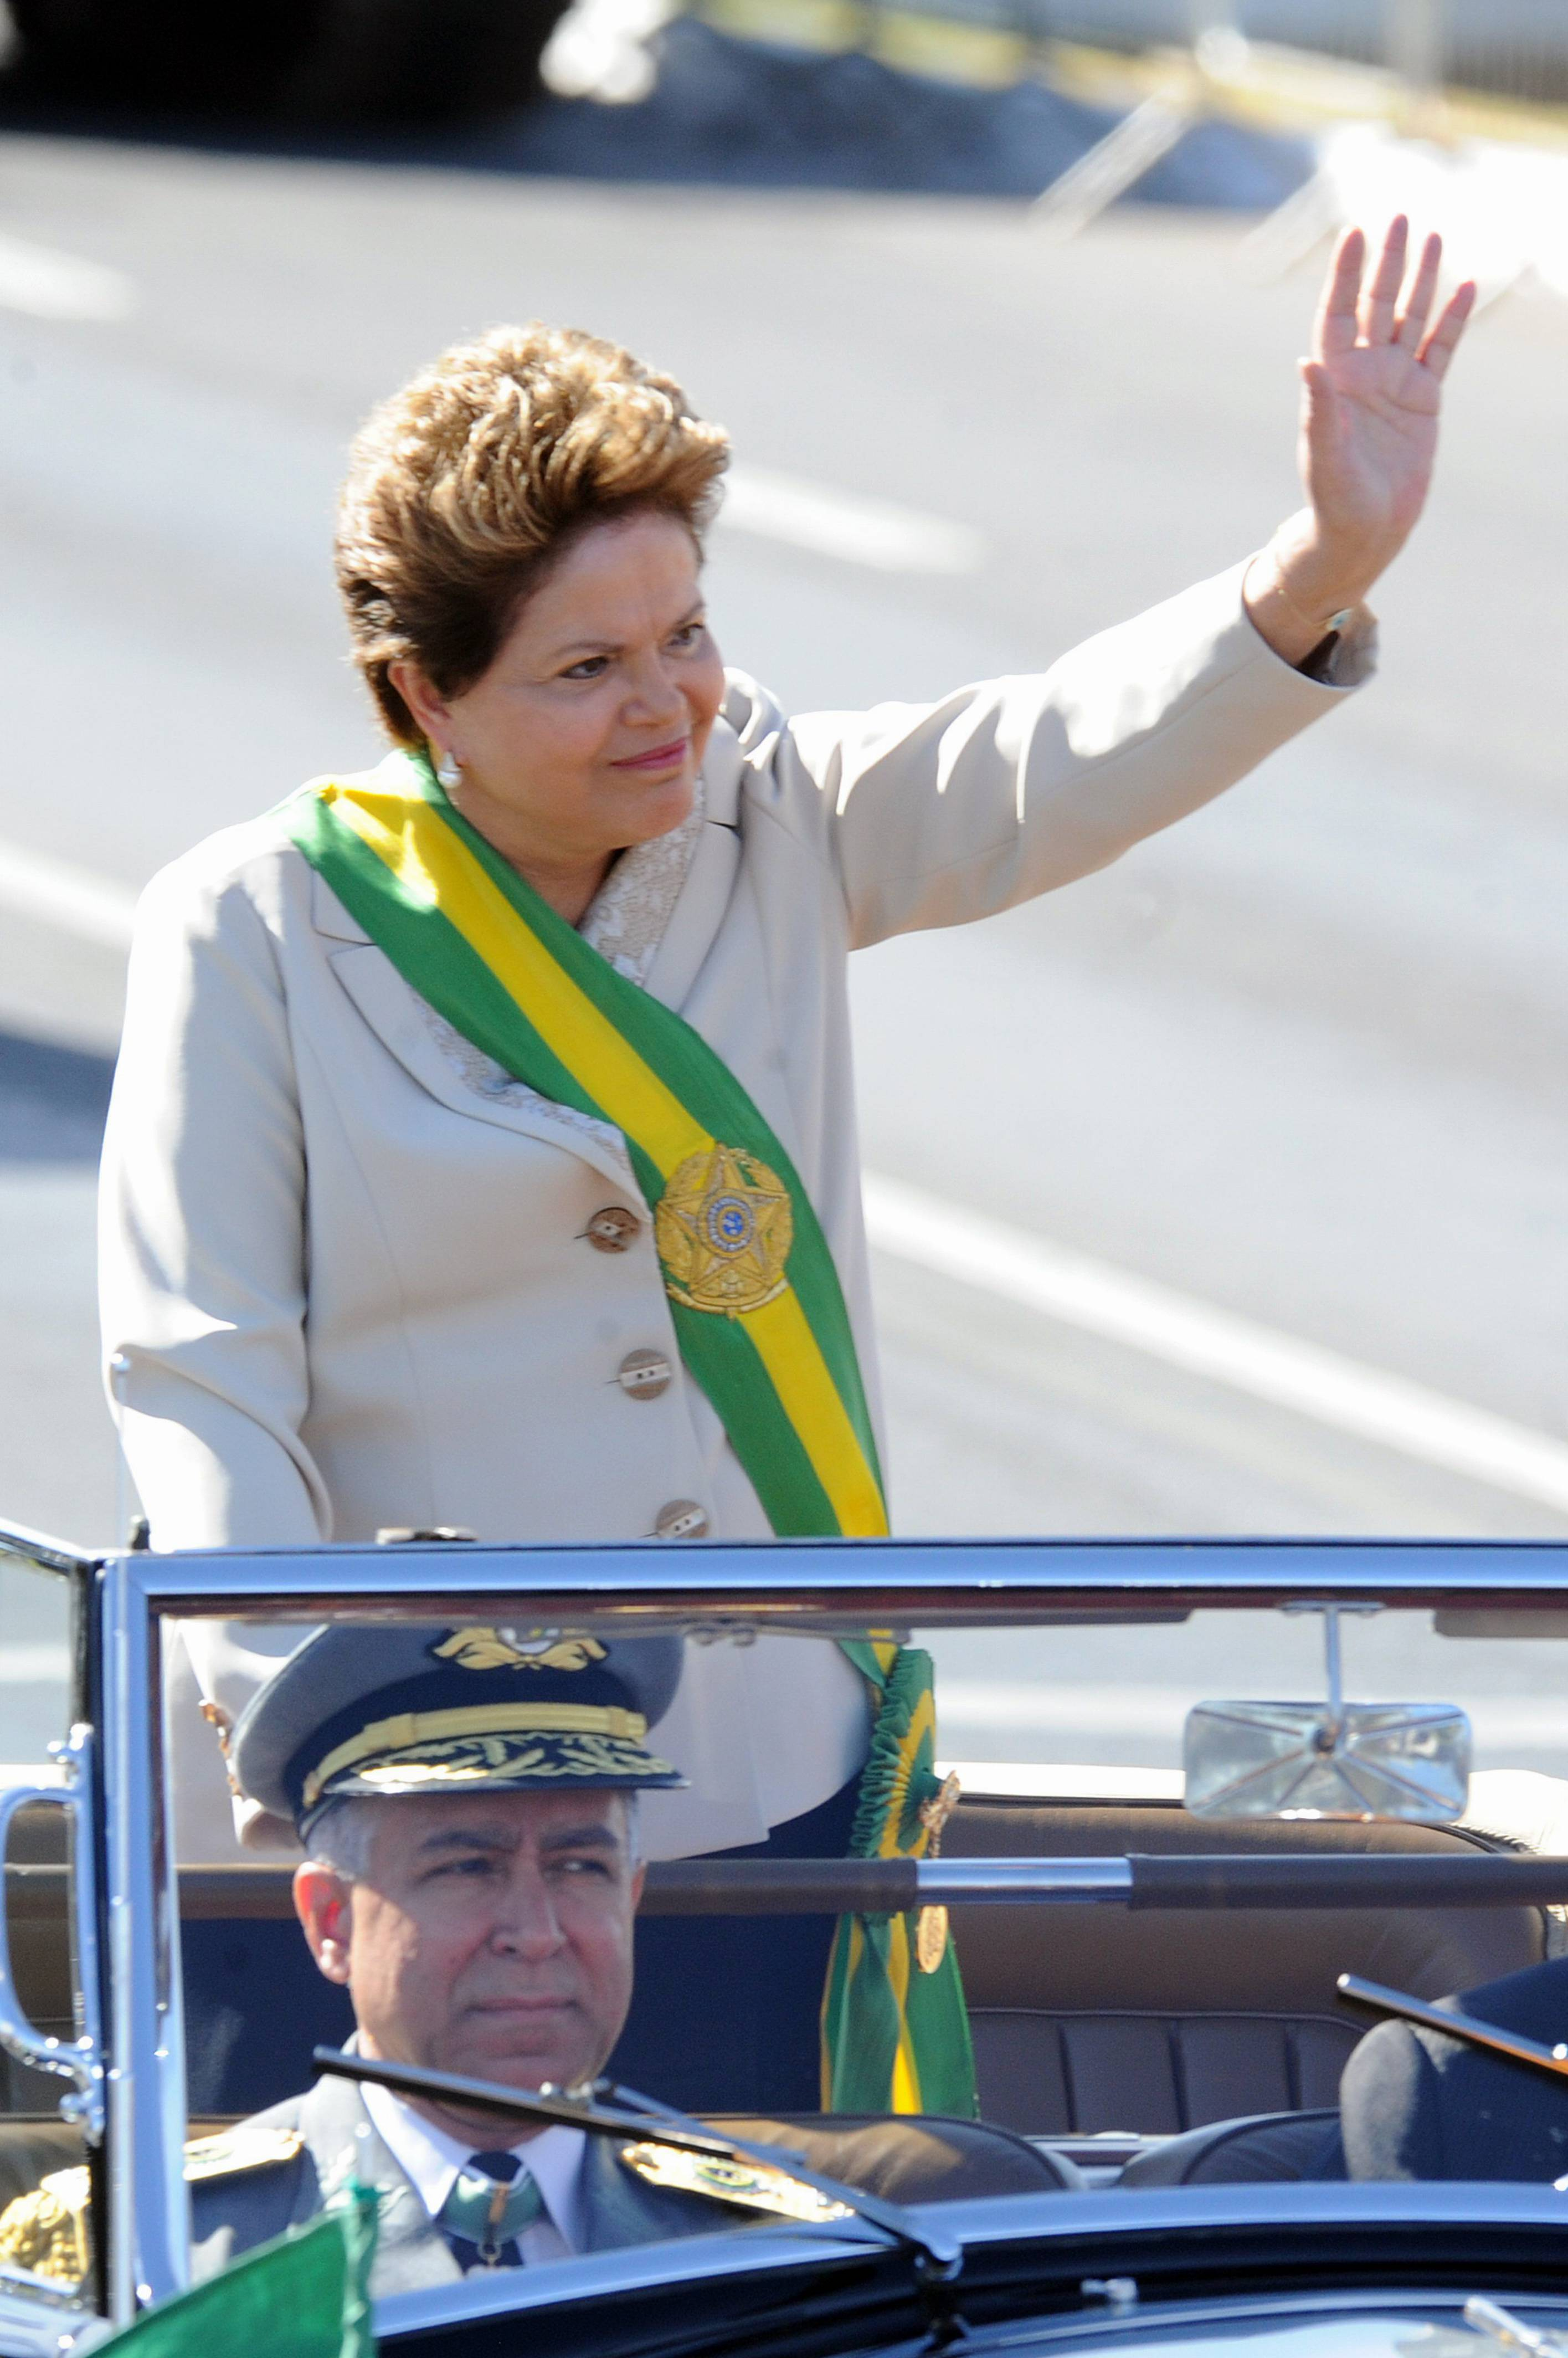 Current Brazilian President Dilma Rousseff.